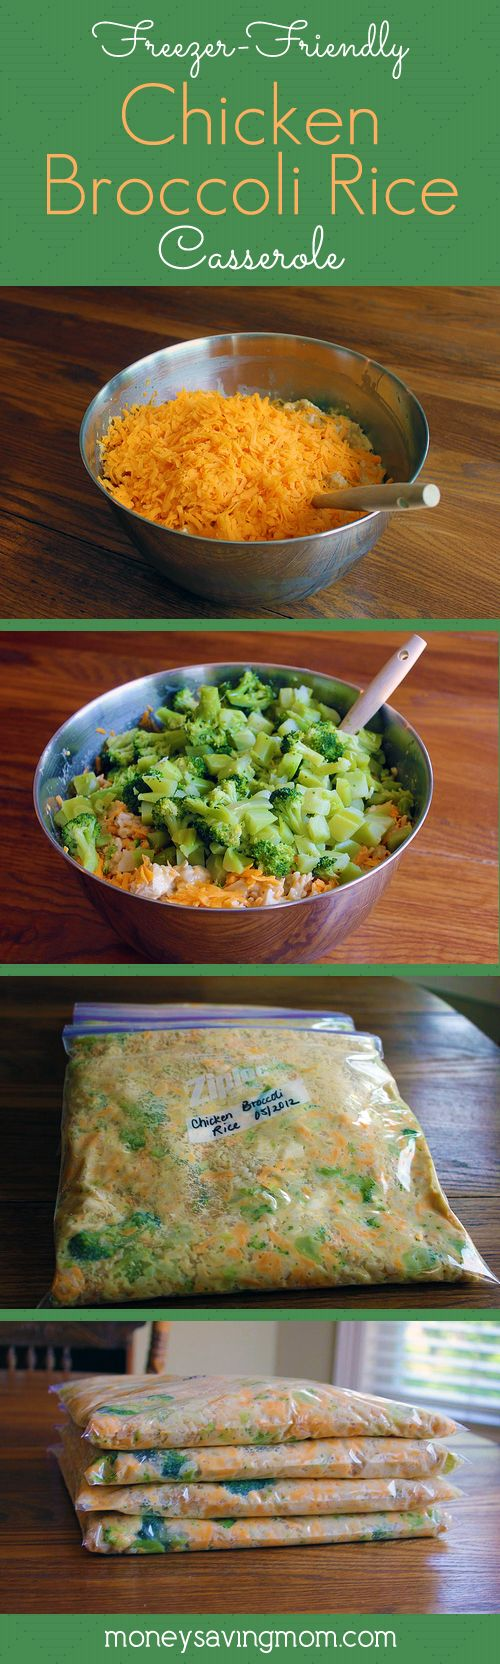 Freezer Friendly Chicken Broccoli Rice Casserole -- this recipe is hands down one of our very favorite. It's easy to whip up, it's frugal, and it freezes well !